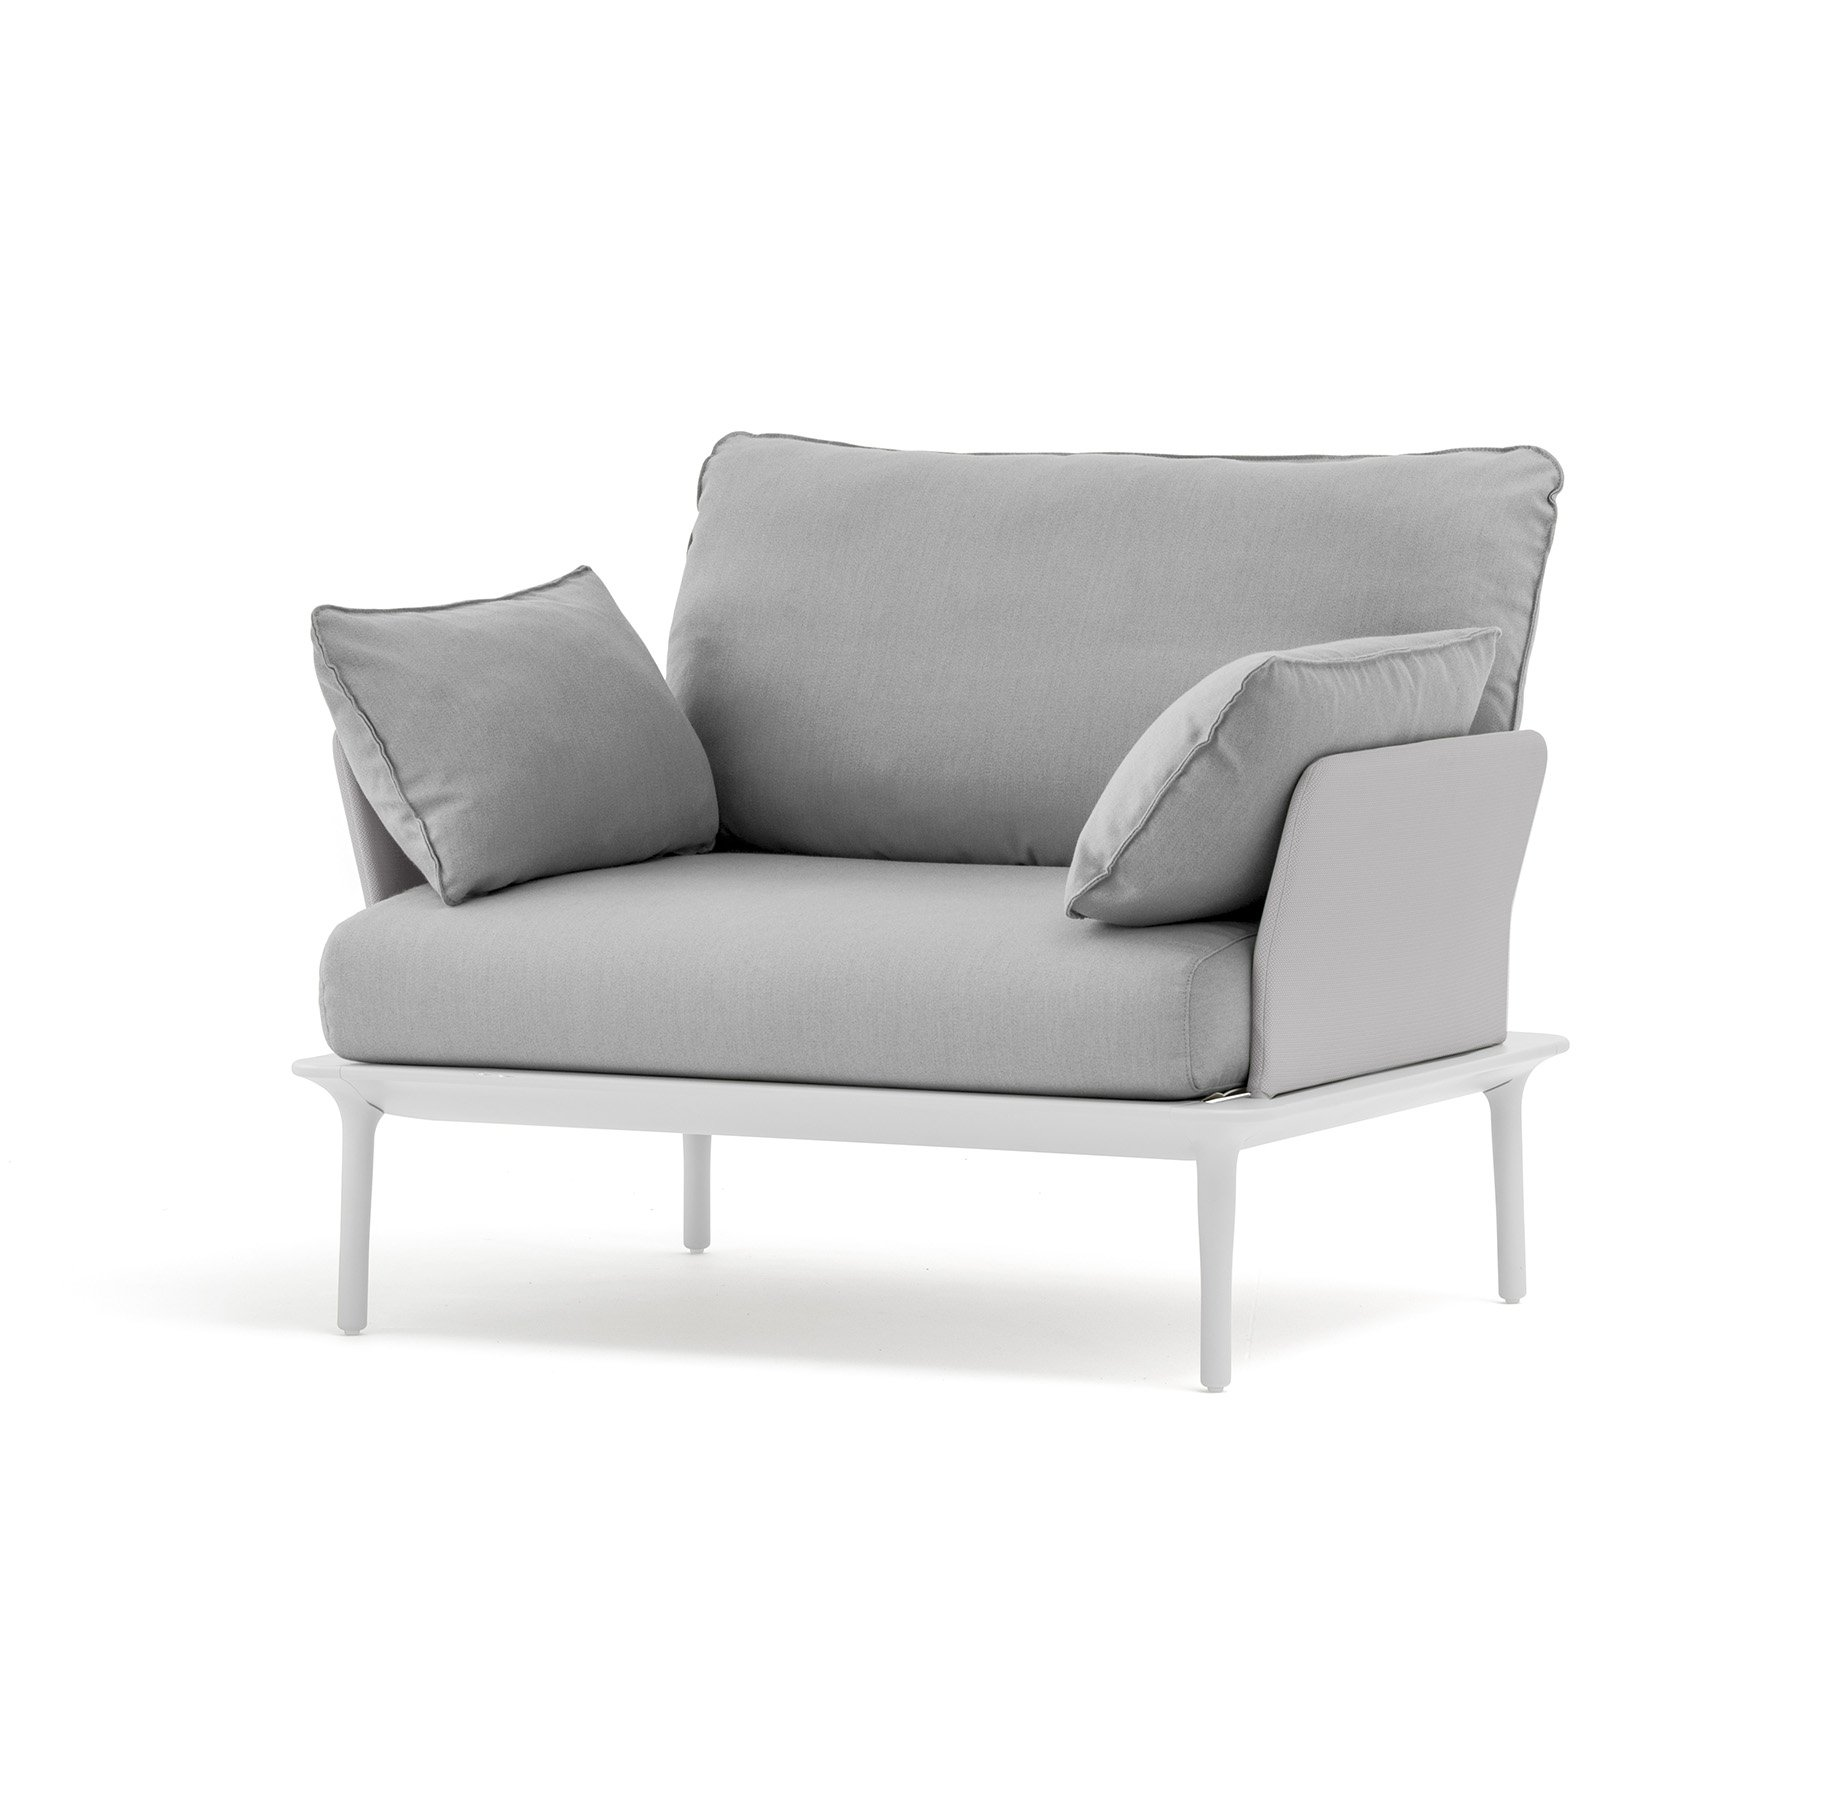 Reva Lounge Chair from Pedrali, designed by Patrick Jouin